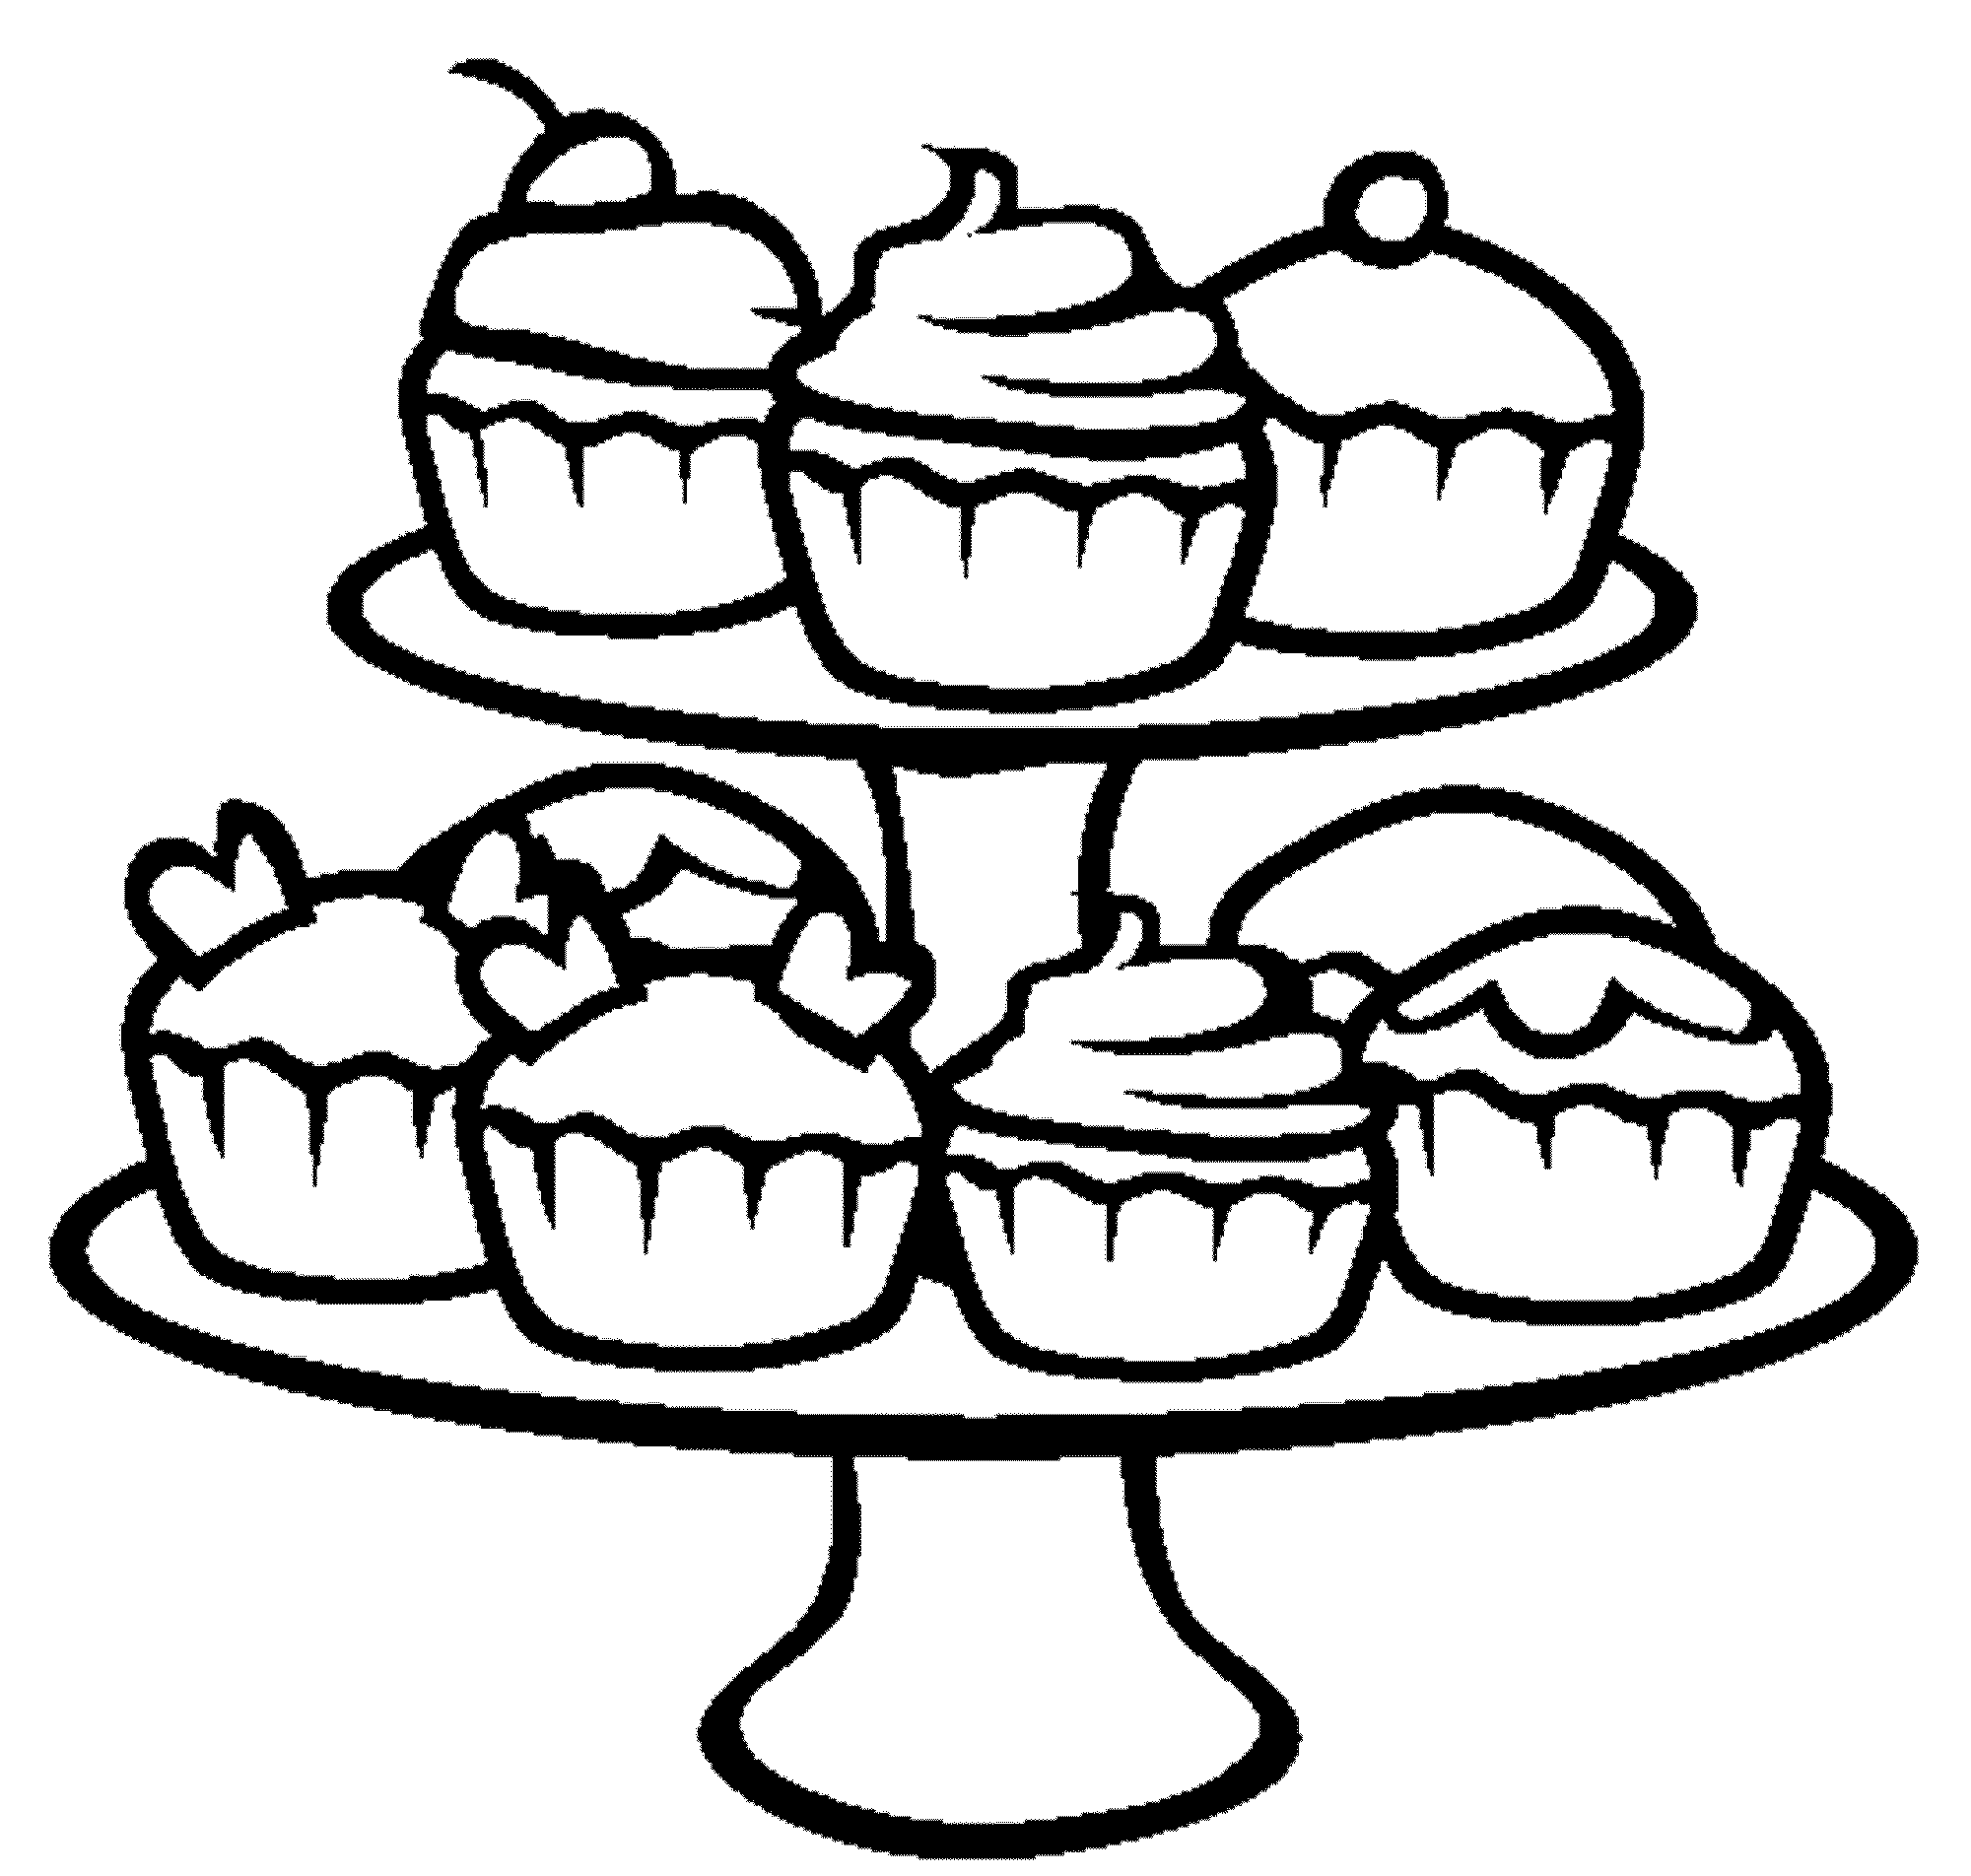 Cupcake Coloring Pictures : Cupcake Printable Coloring Pages - Coloring Home